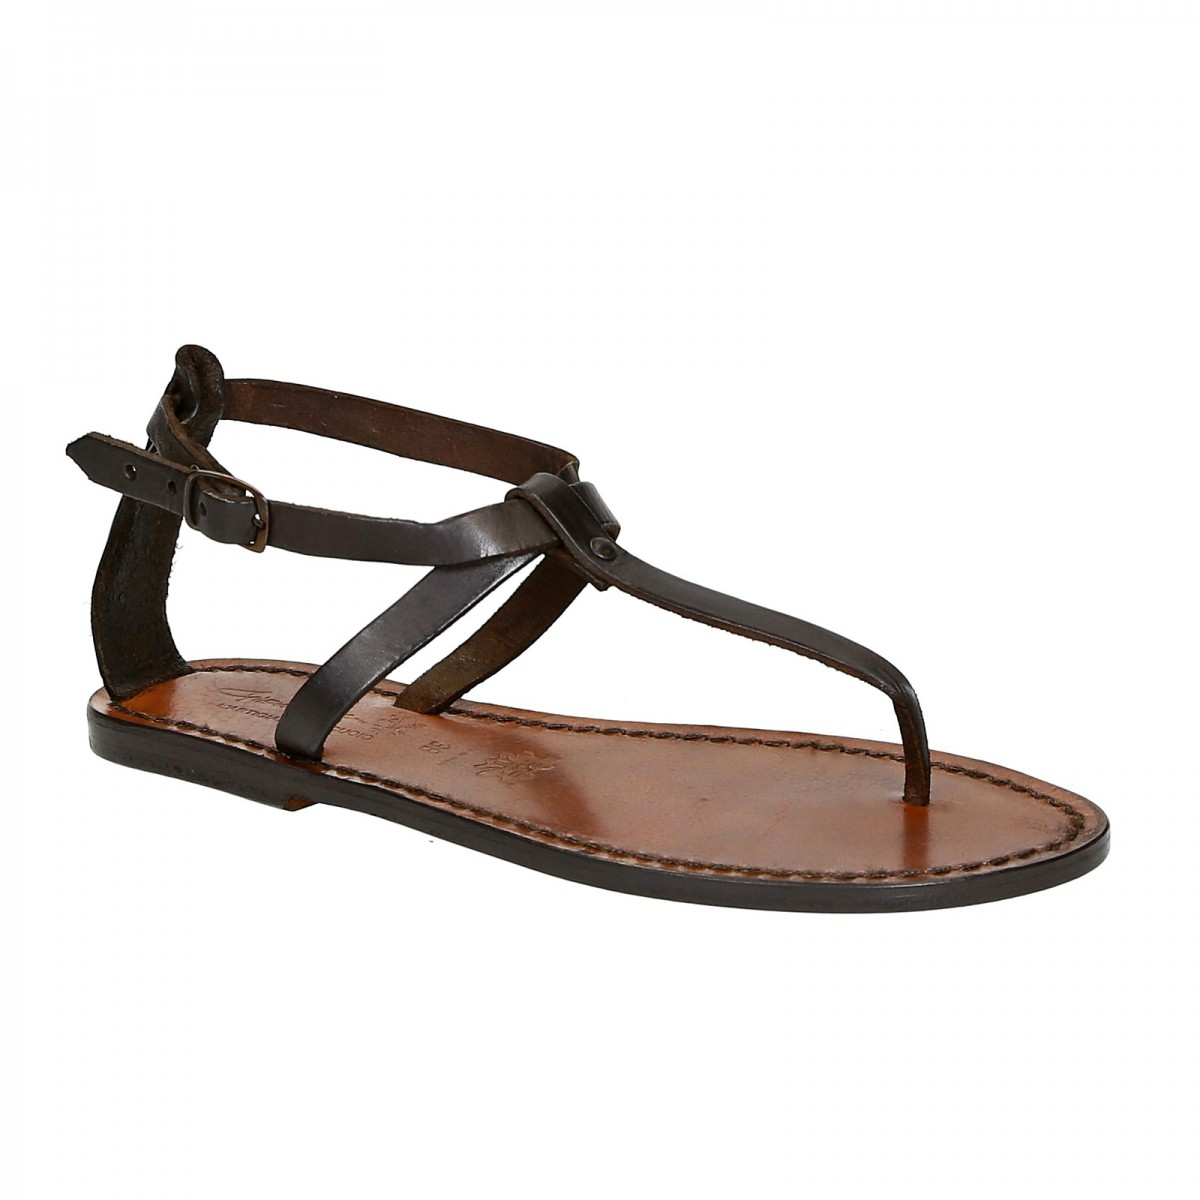 fb7b2d94d Womens thong sandals in Dark Brown Leather handmade in Italy. Loading zoom